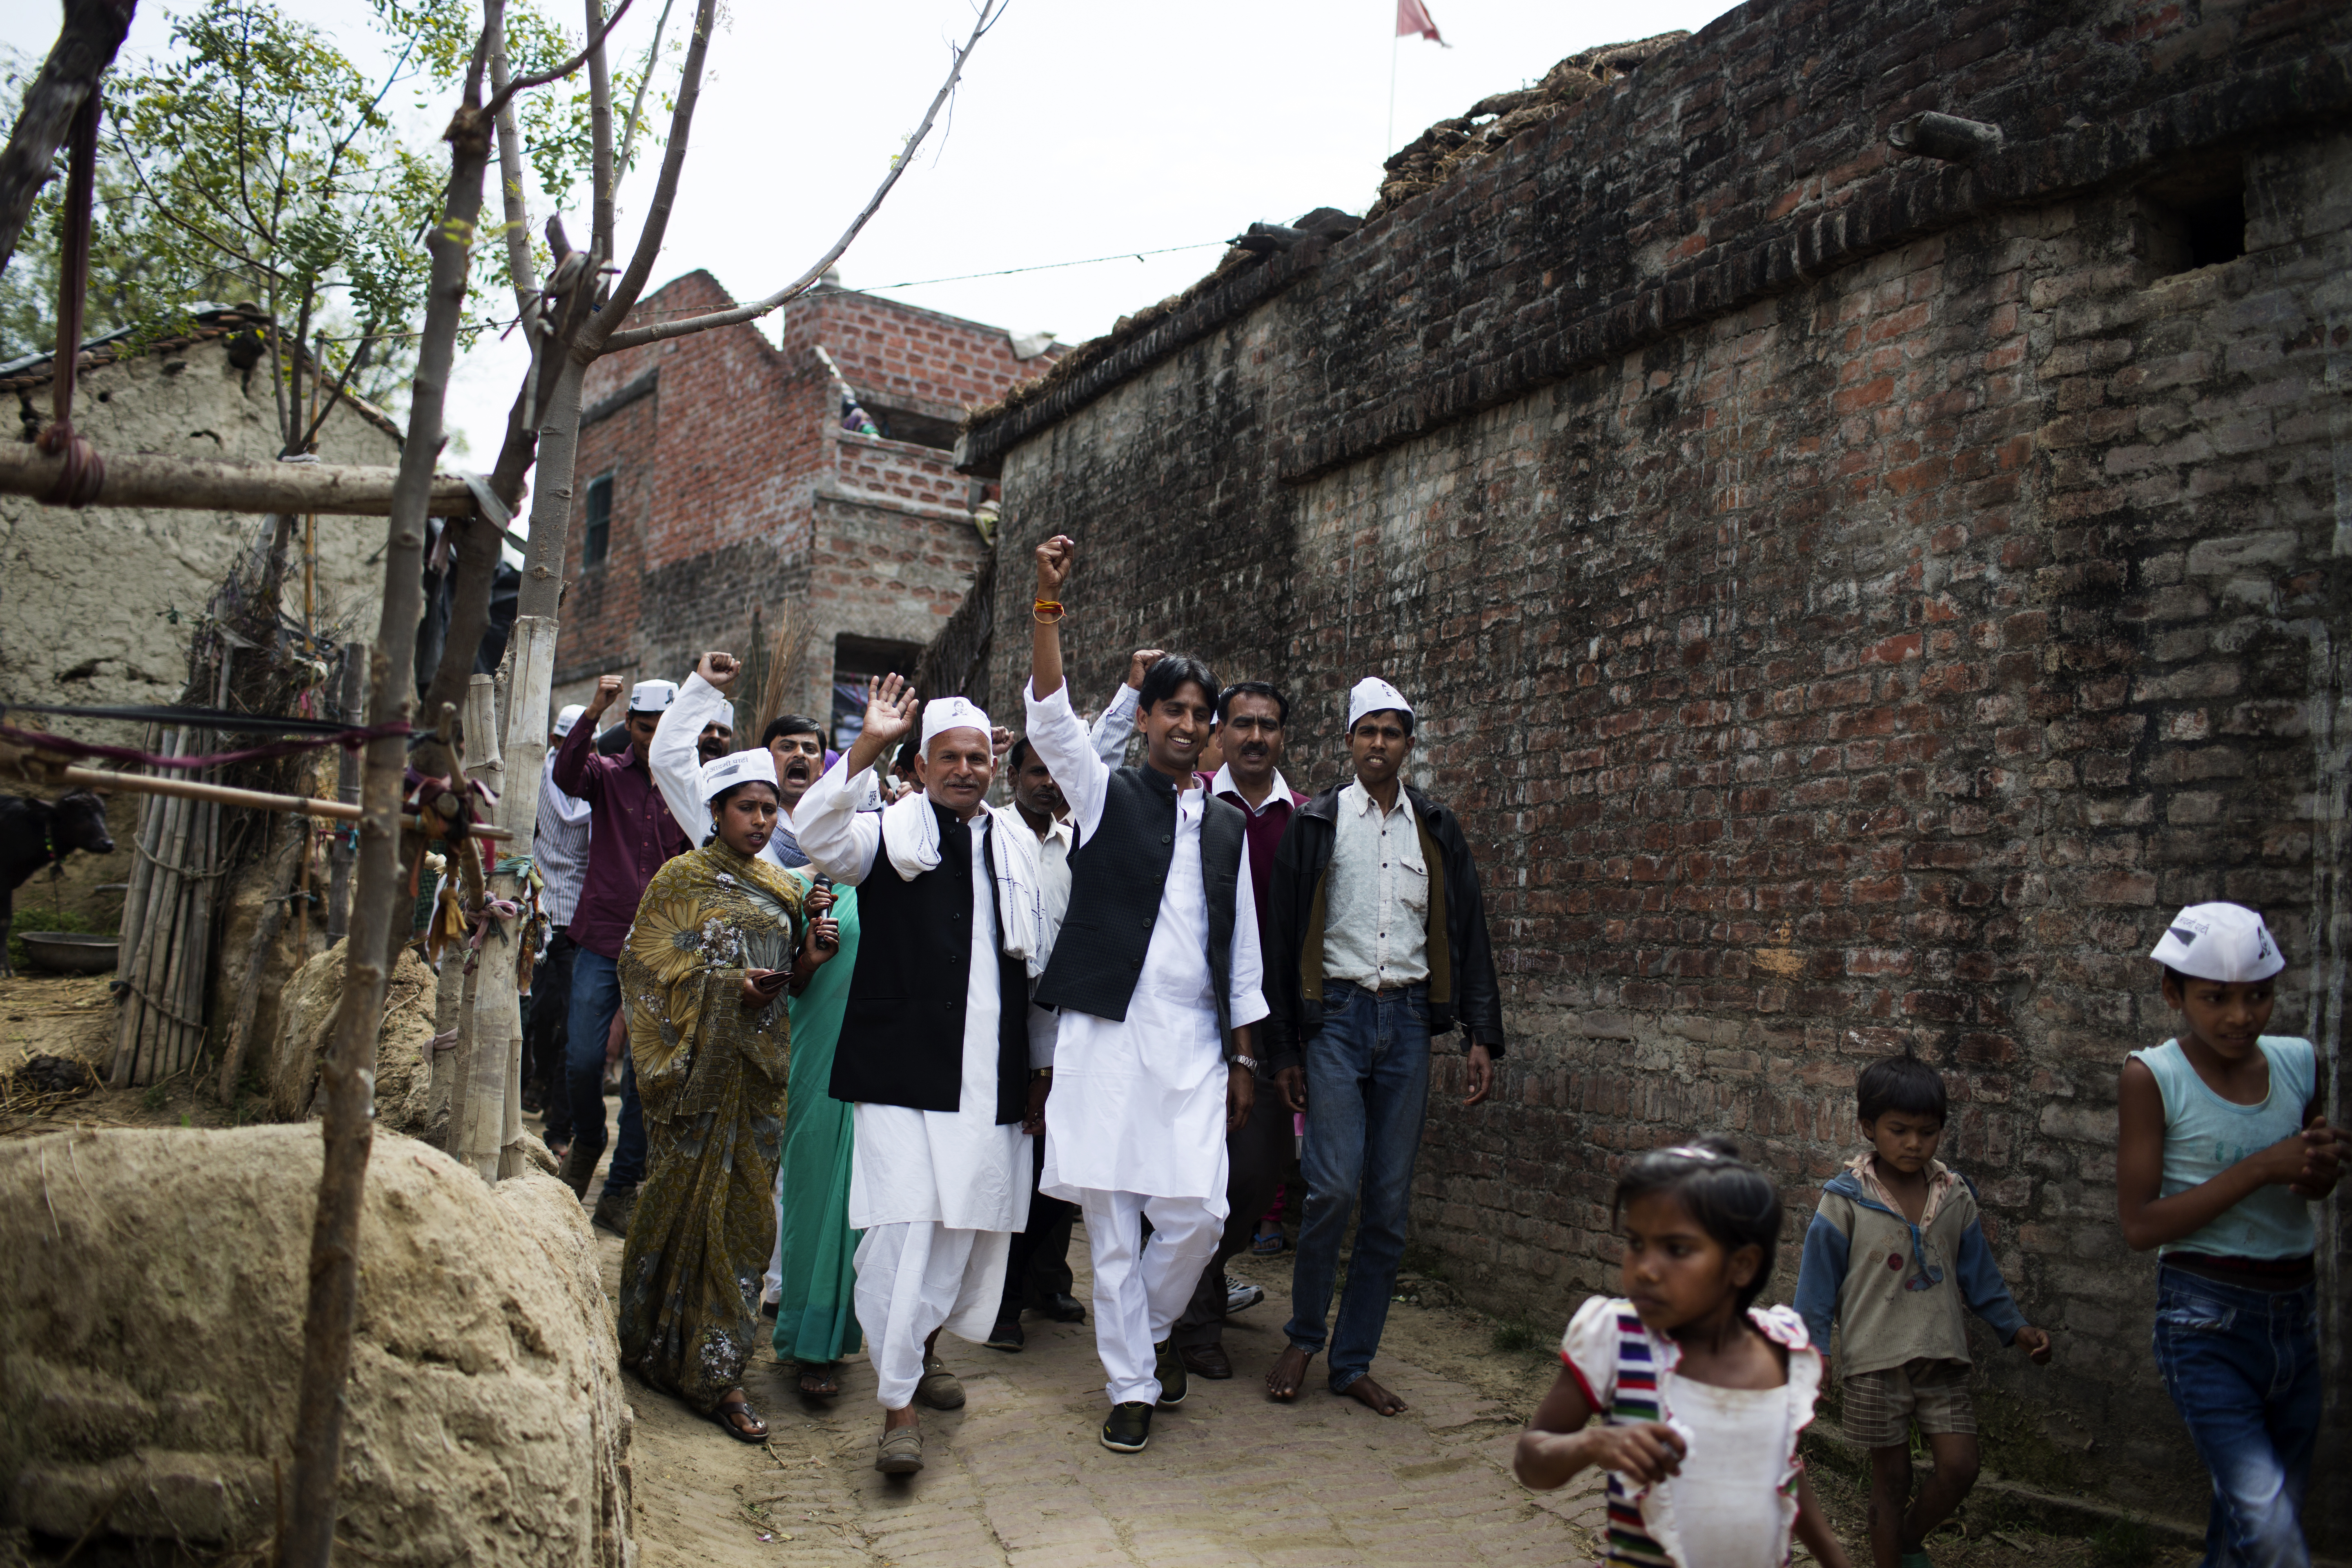 AAP candidate Kumar Vishwas, front center, arm raised high, campaigns in Amethi district